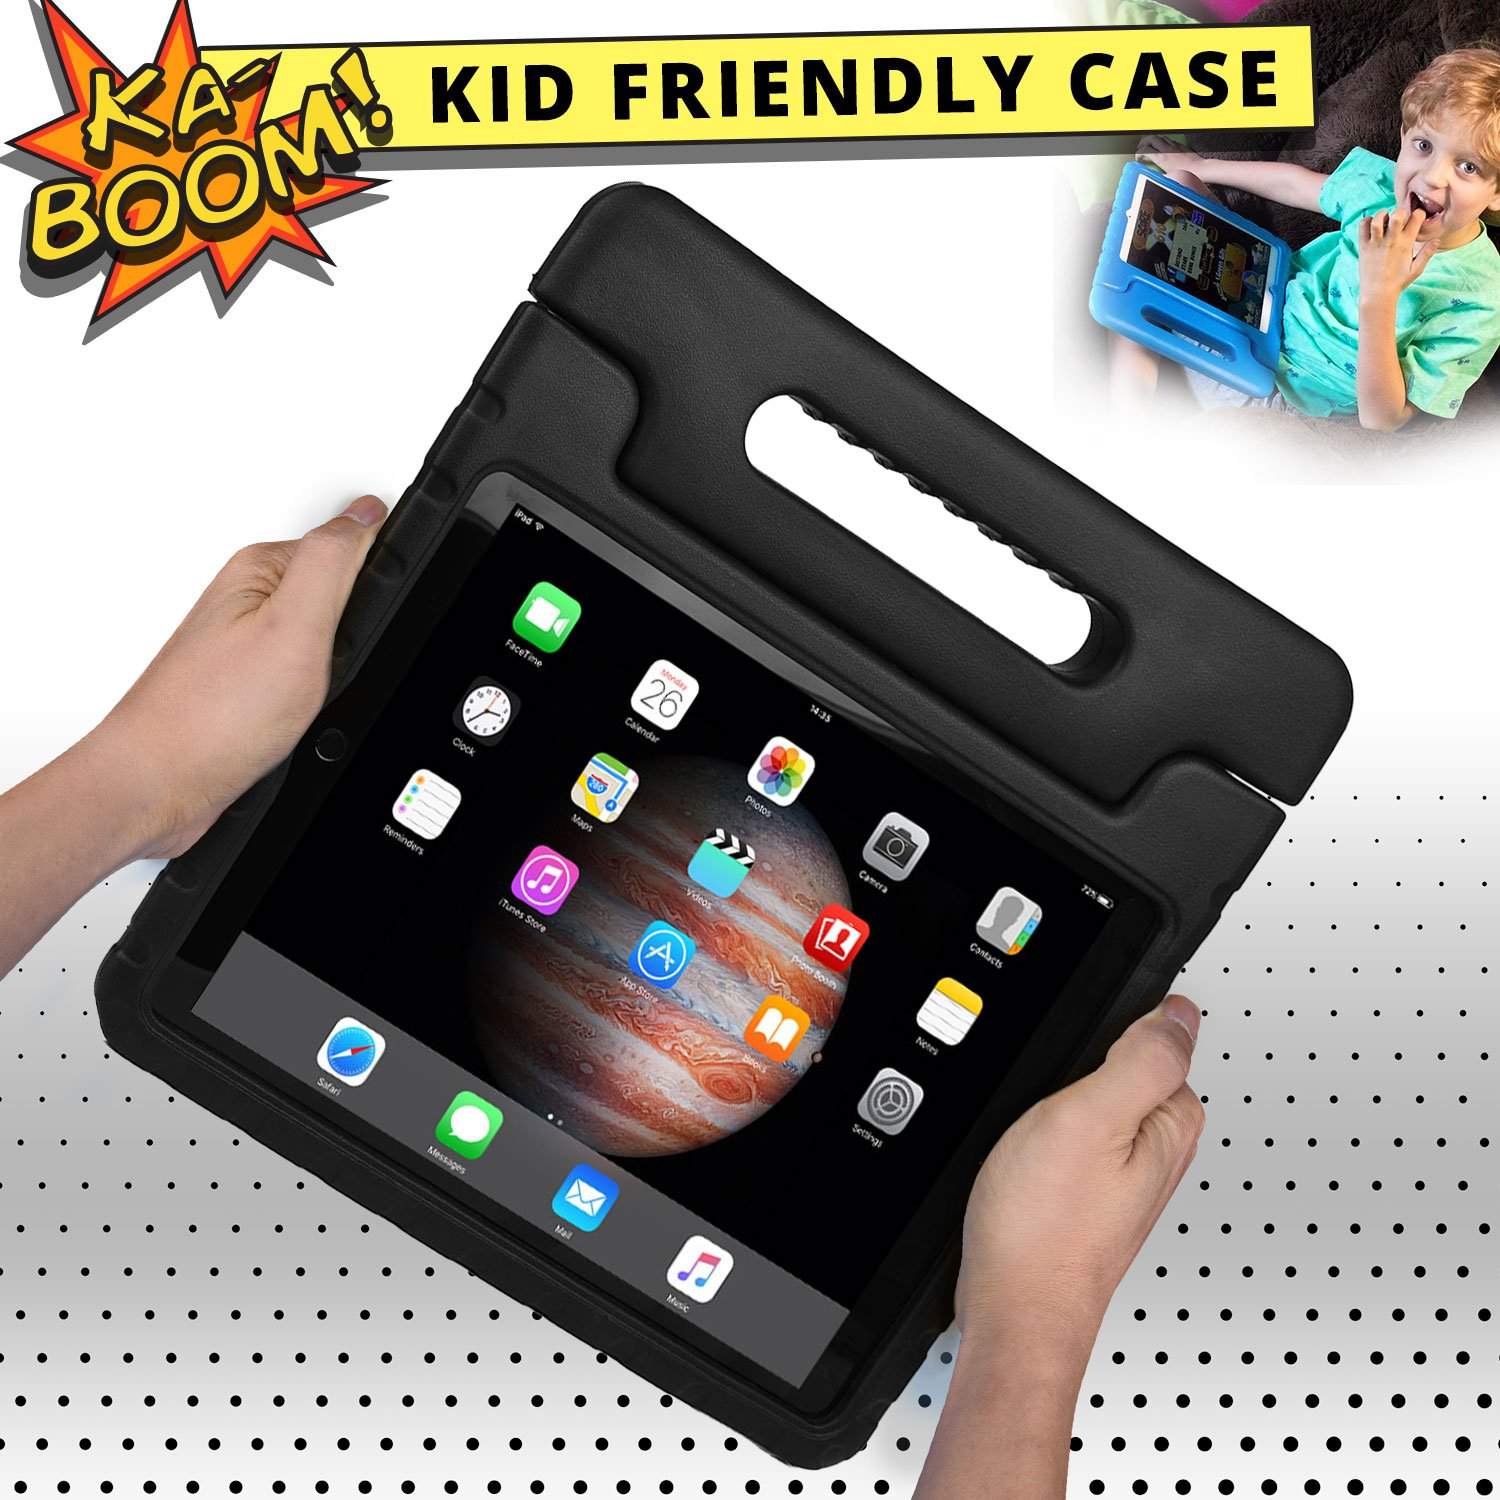 COOPER DYNAMO Shock Proof Kids case compatible with iPad Pro 12.9 | Heavy Duty Kidproof Cover for Kids | Girls, Boys, School | Kid Friendly Handle & Stand, Screen Protector | Apple A1584 A1652 (Black) by Cooper Cases (Image #5)